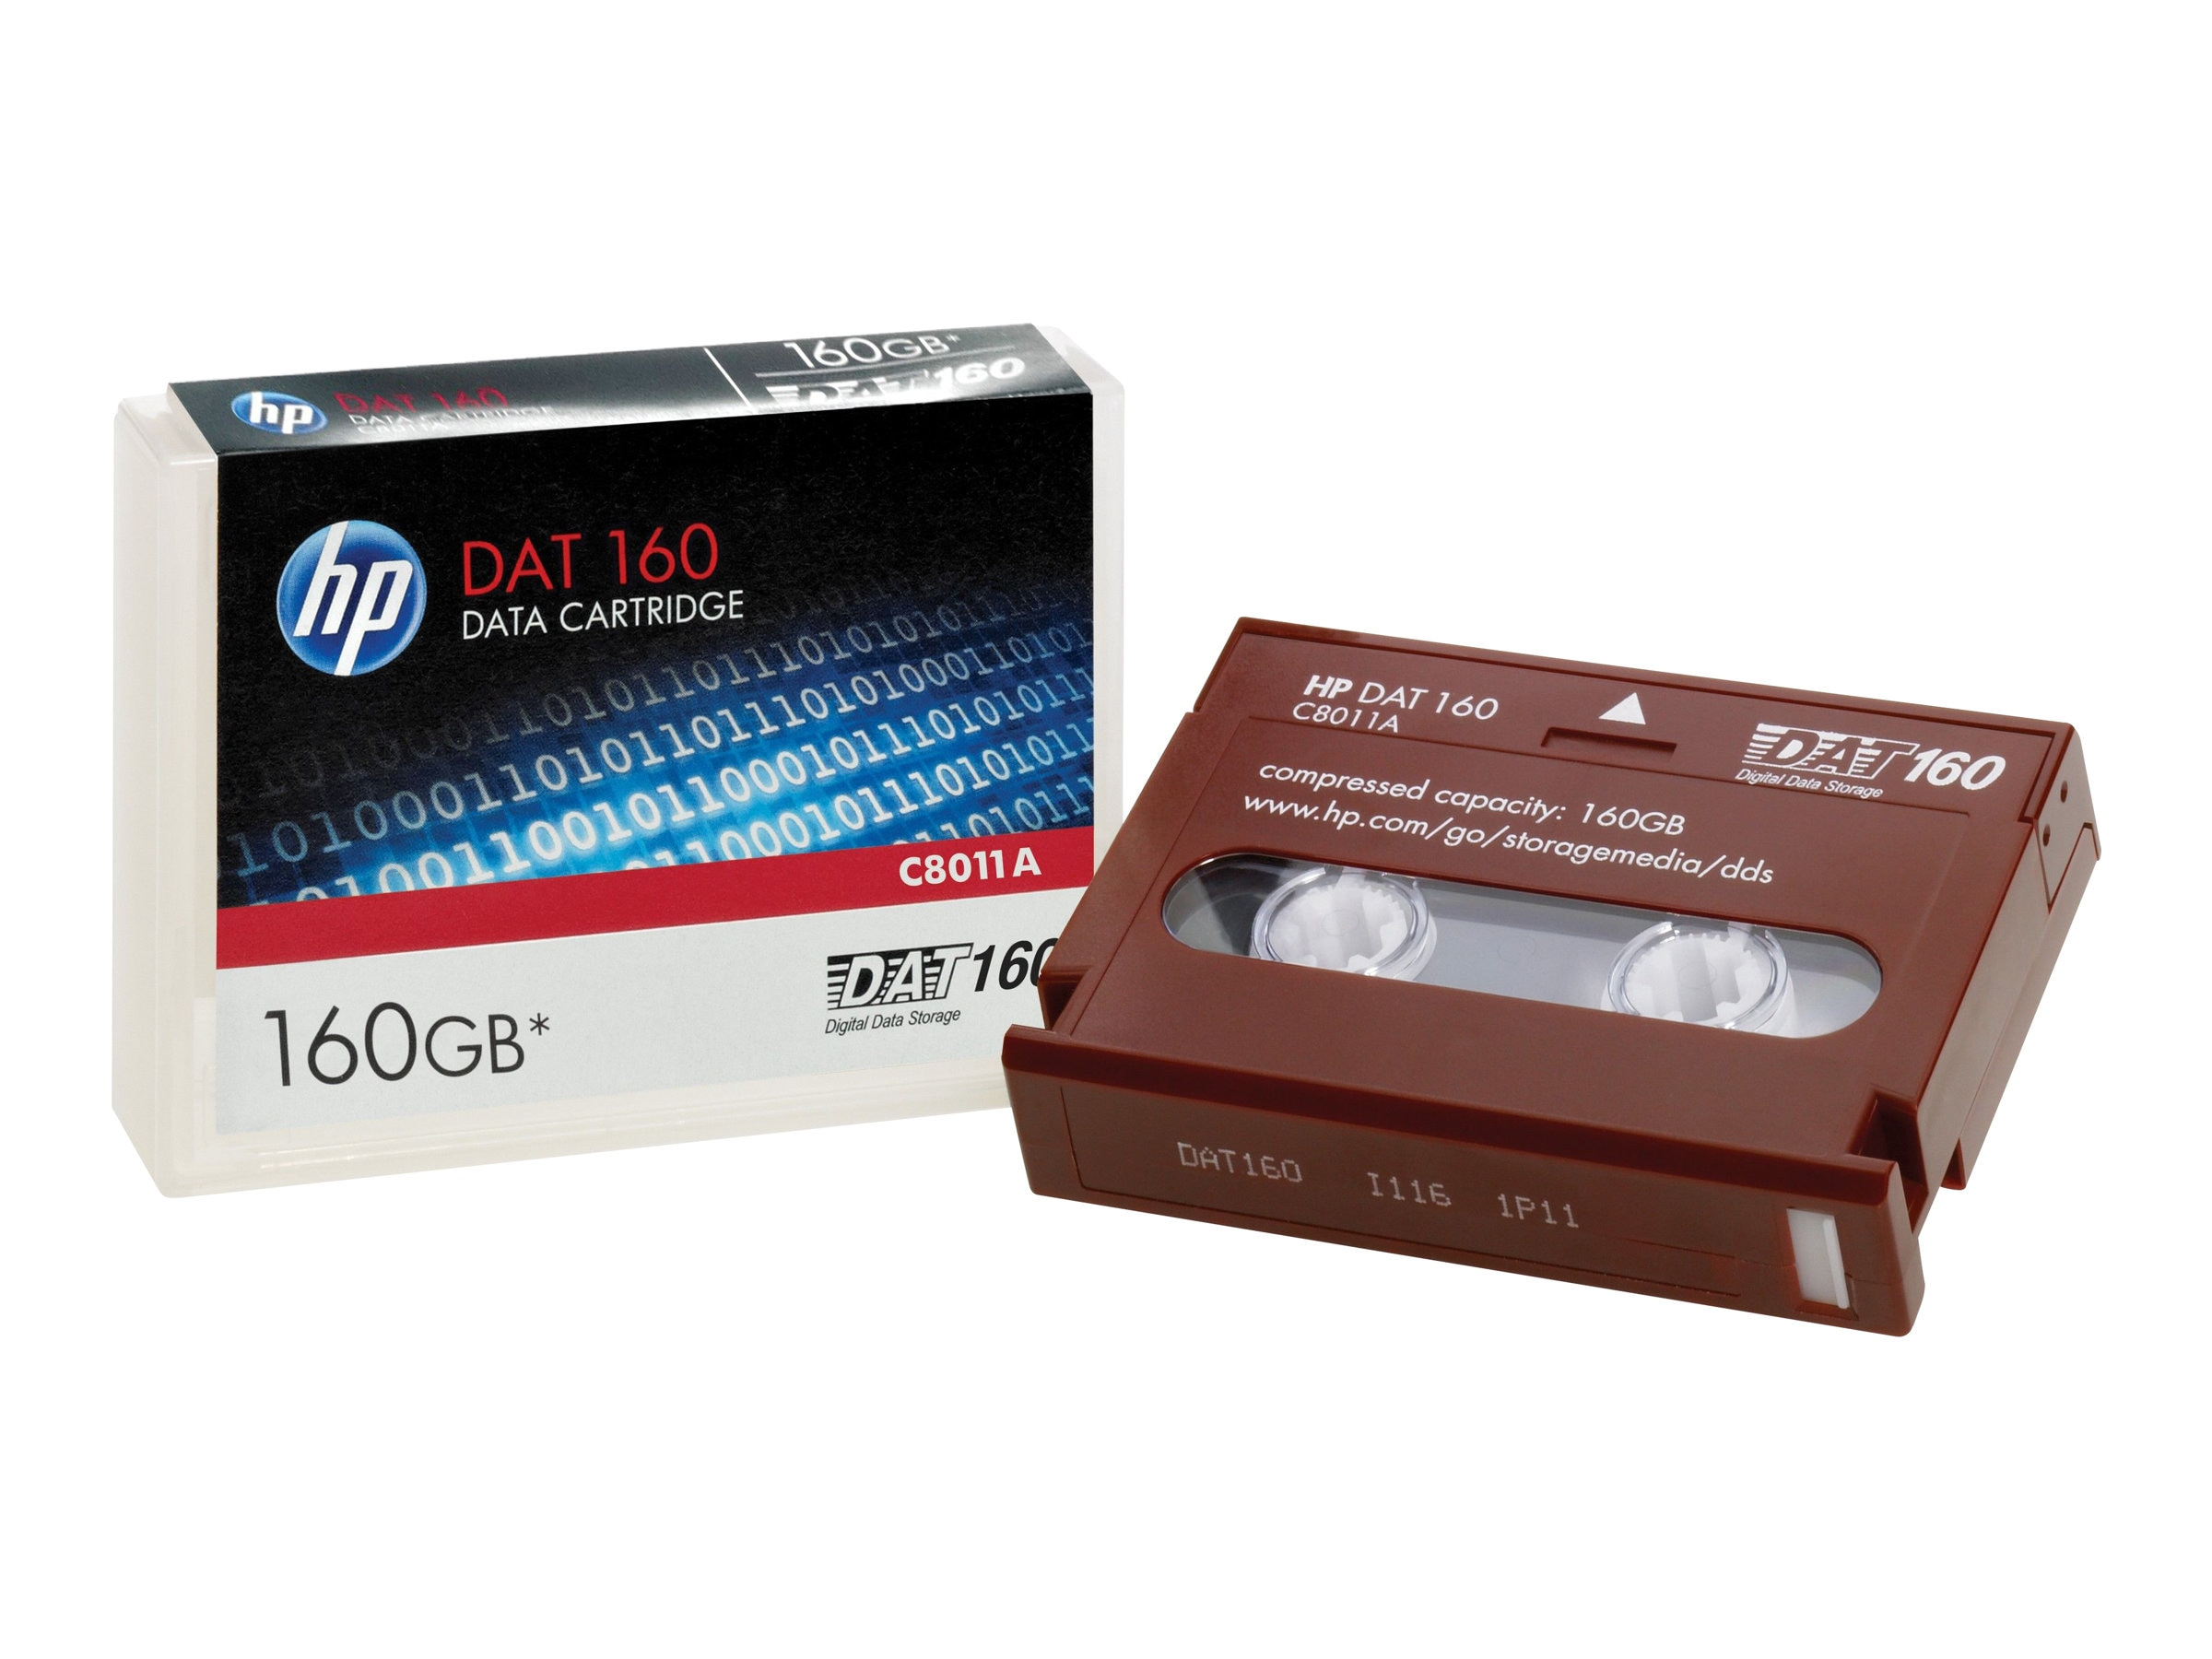 HPE DAT 160 Data Cartridge 160GB, C8011A, 7740280, Tape Drive Cartridges & Accessories